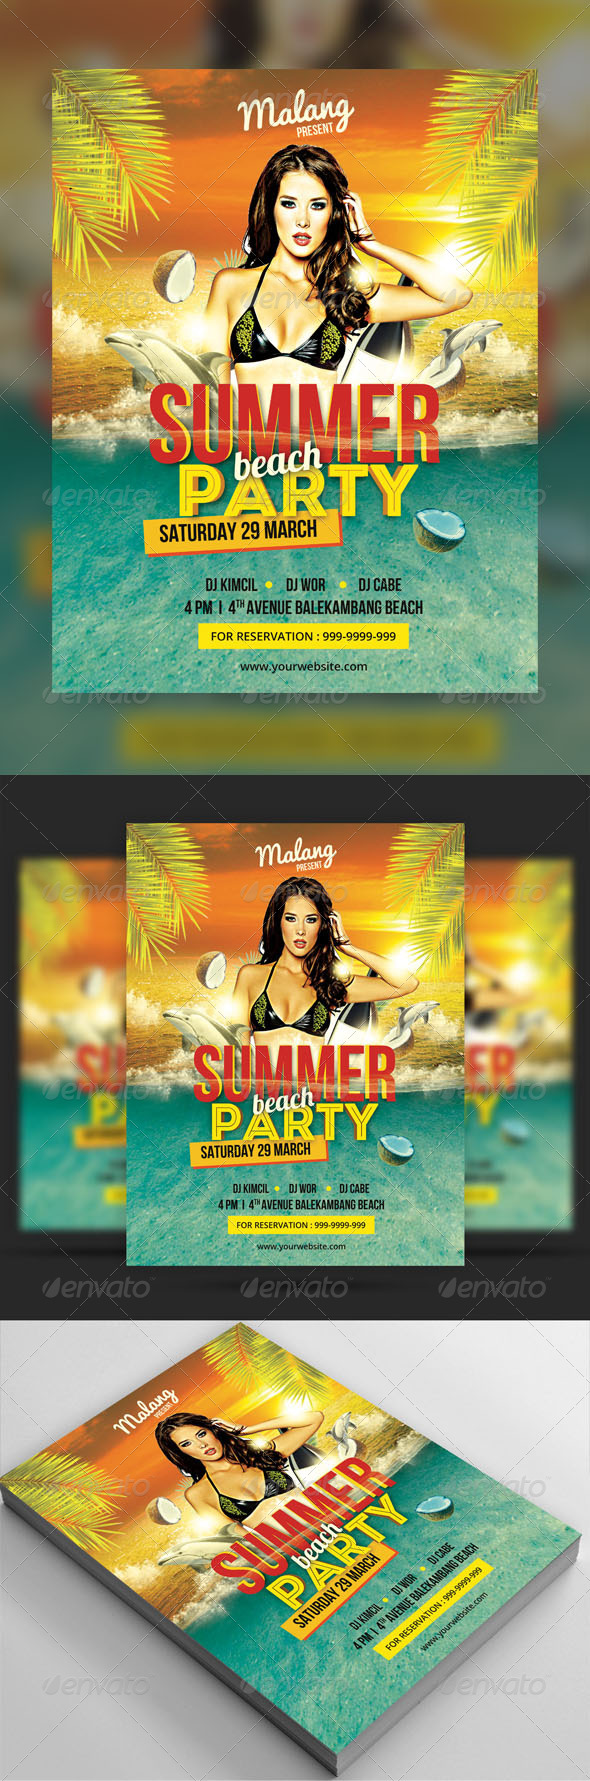 GraphicRiver Summer Beach Party Flyer 7702582